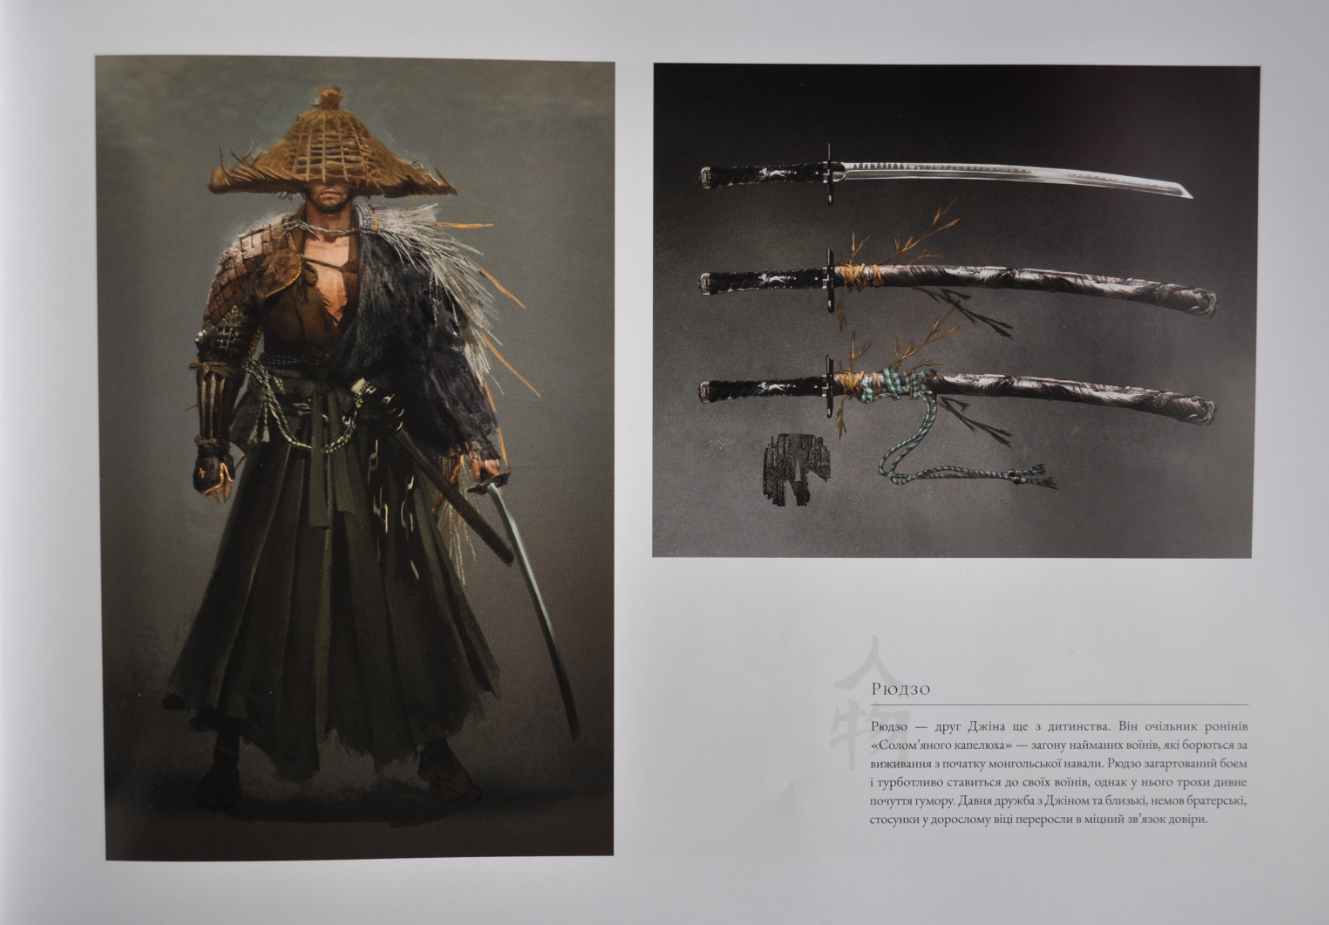 A page from the Art of Ghost of Tsushima in Ukrainian